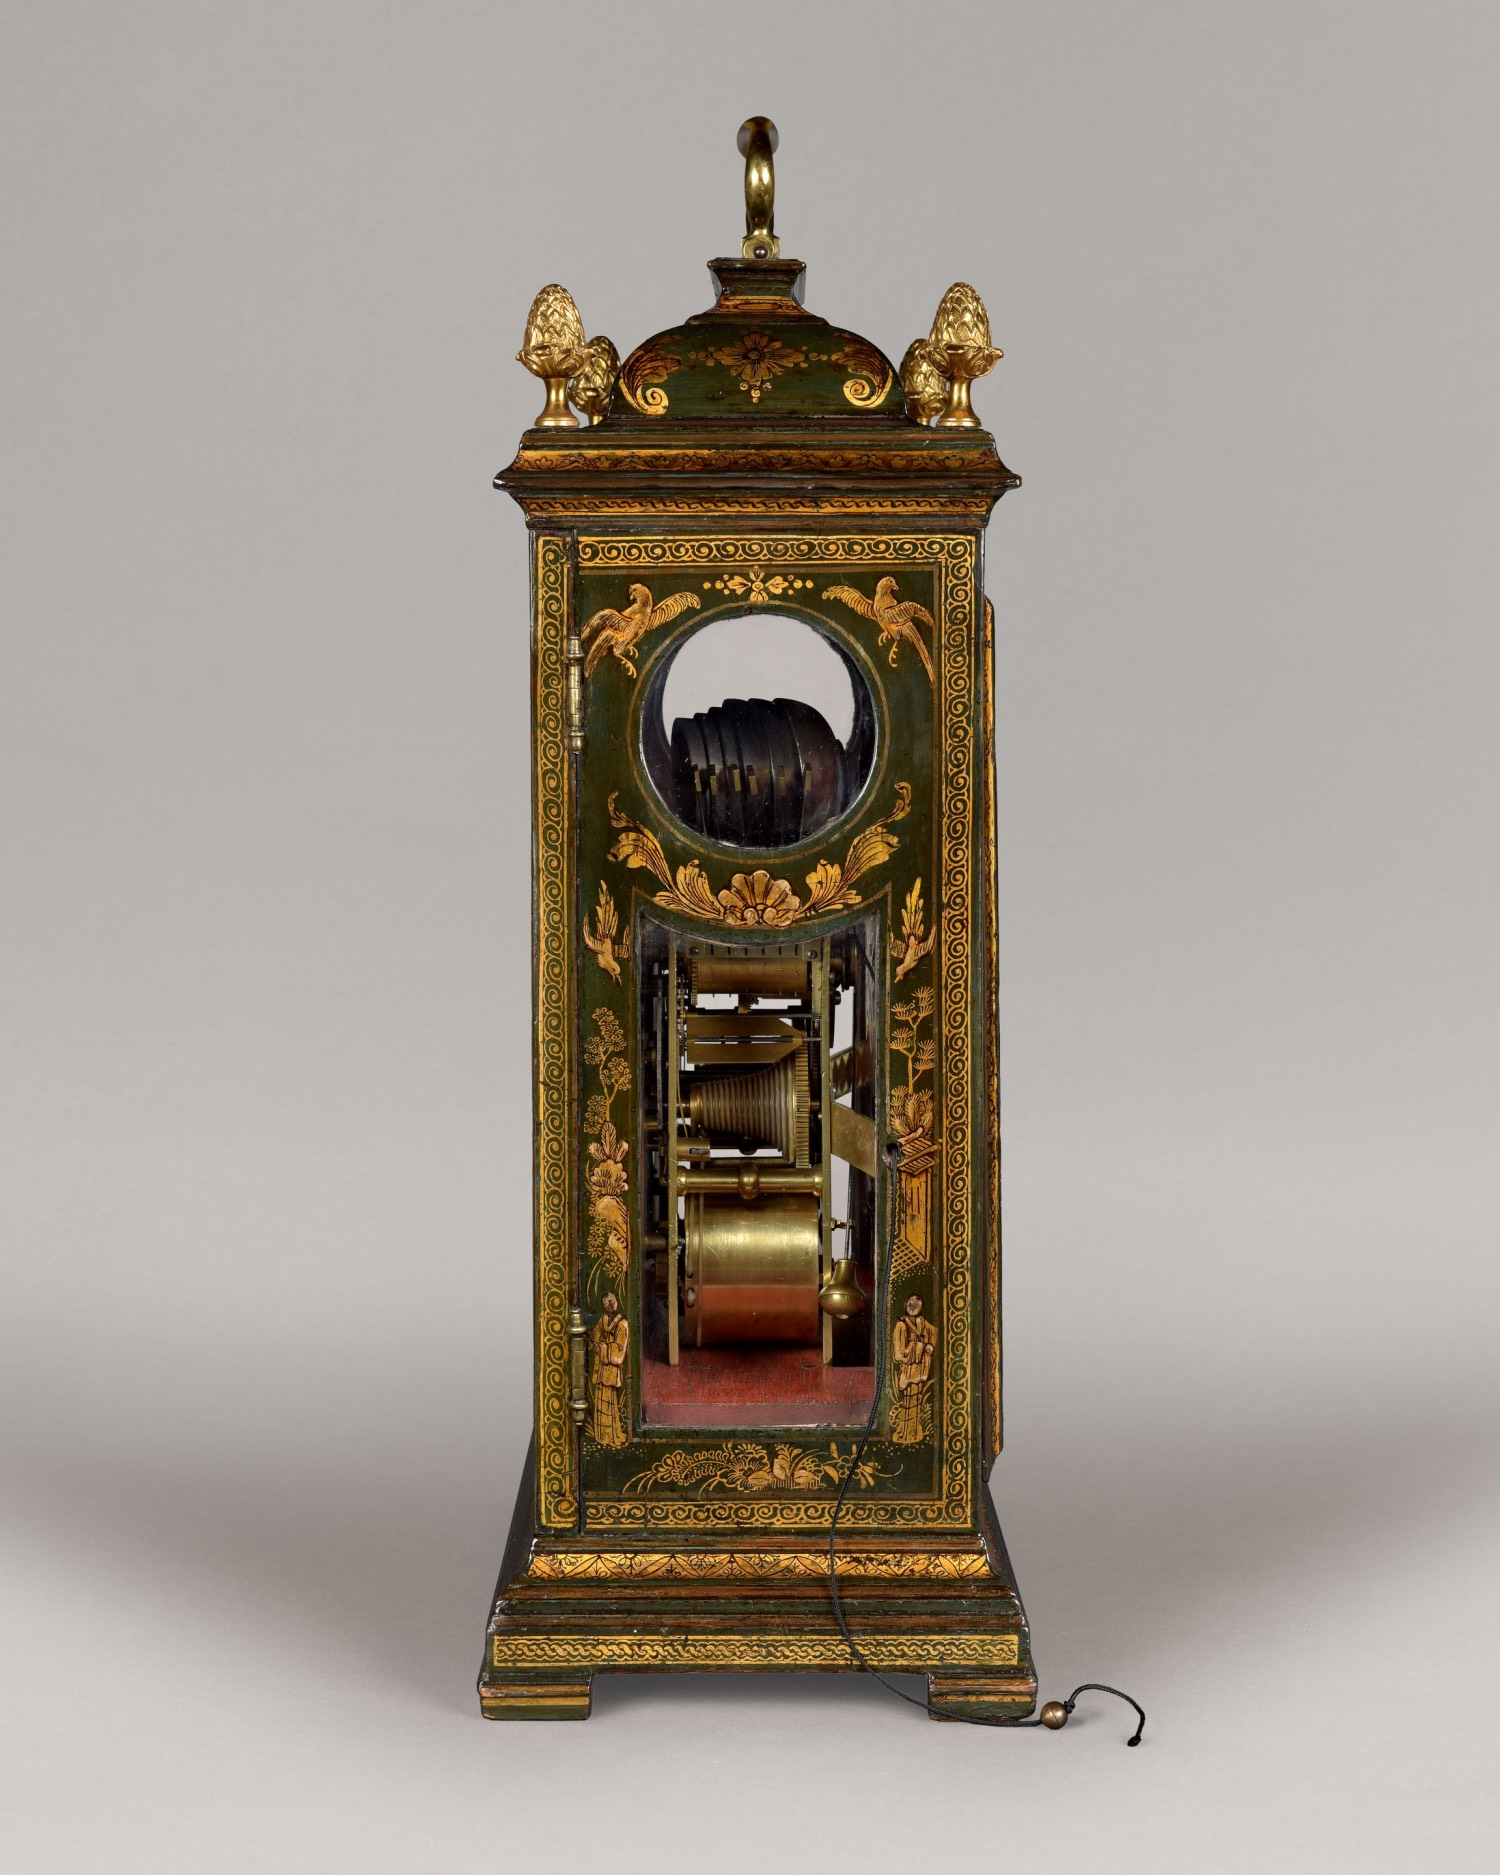 THOMAS GARDNER. A HANDSOME 18TH CENTURY GREEN AND GILT LACQUER TABLE CLOCK.